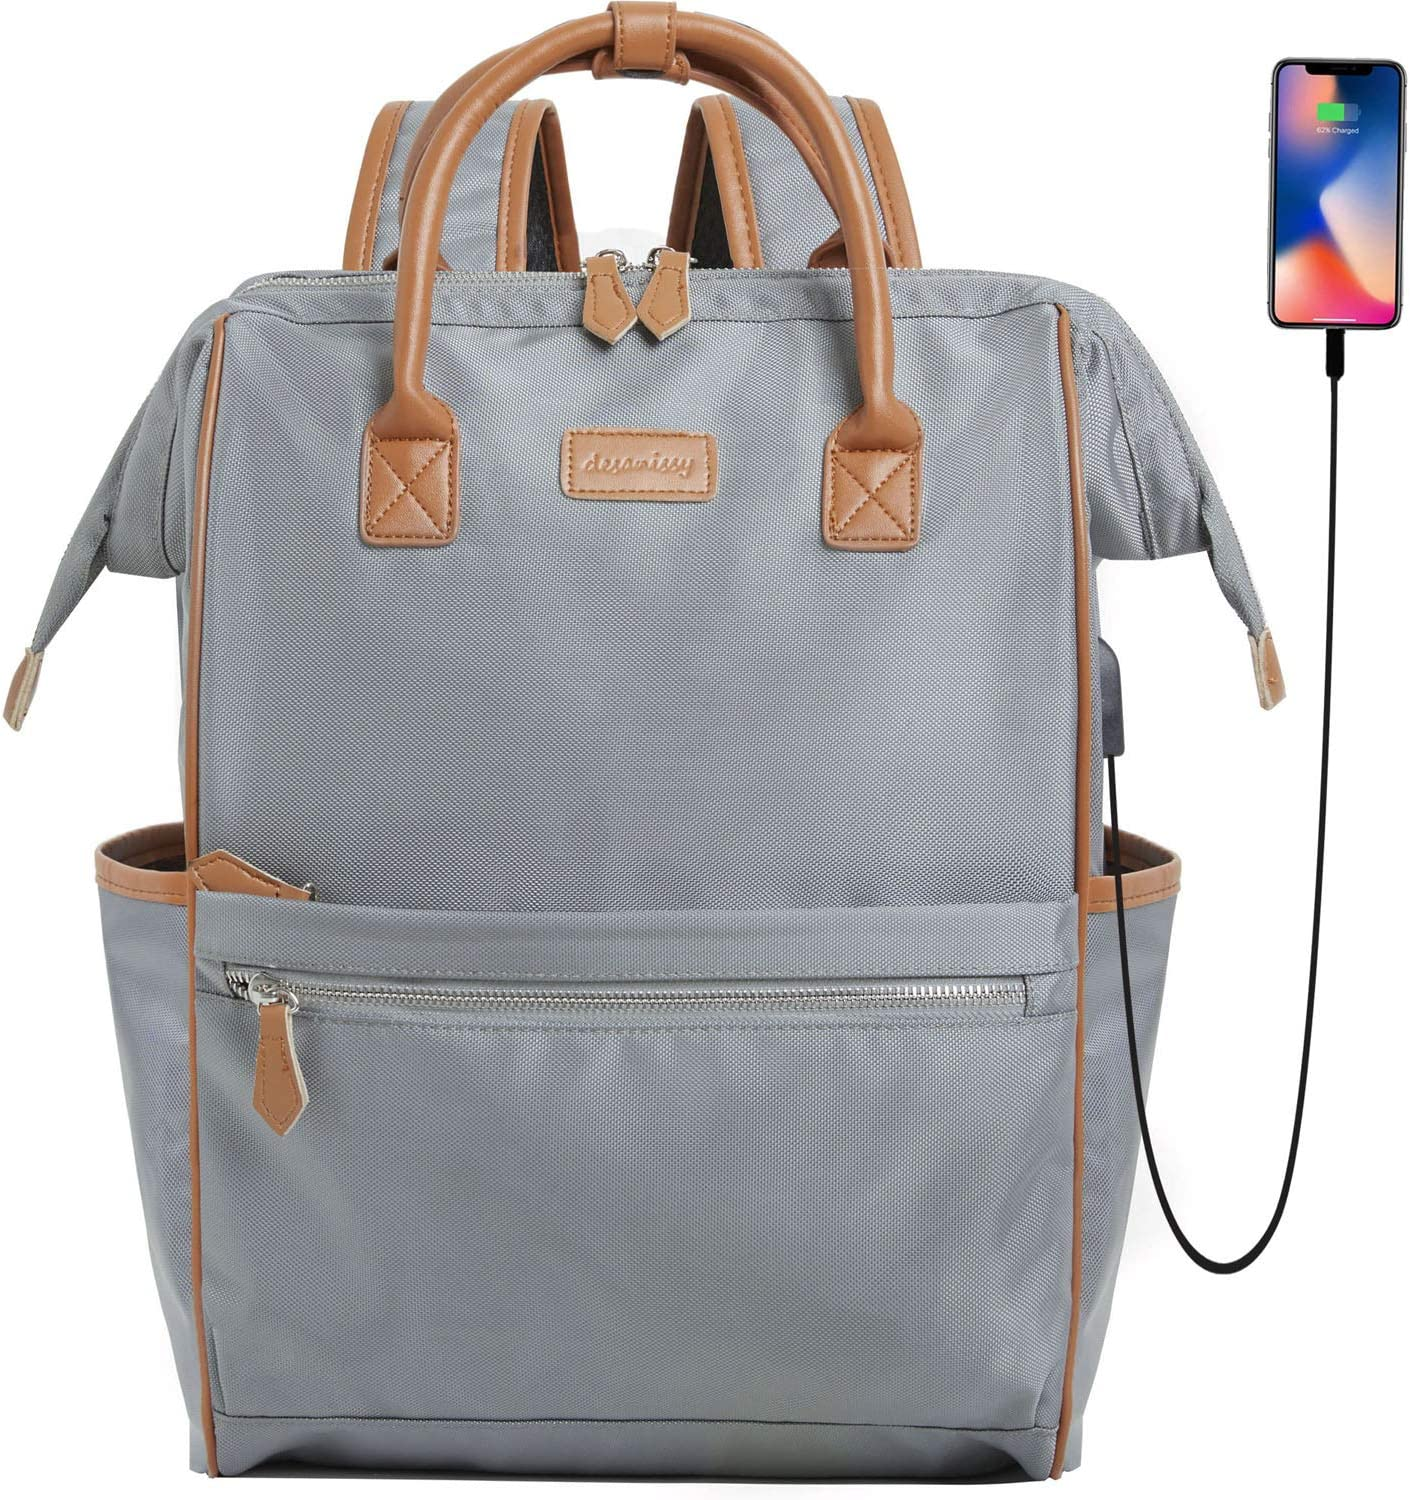 Desanissy Adult Backpack Women Top Open Backpack Laptop Backpack for Women 15.6 Inch Waterproof Nylon Travel Backpack with USB Port Suitable for Nursing Bags/Work Backpack/College Backpack